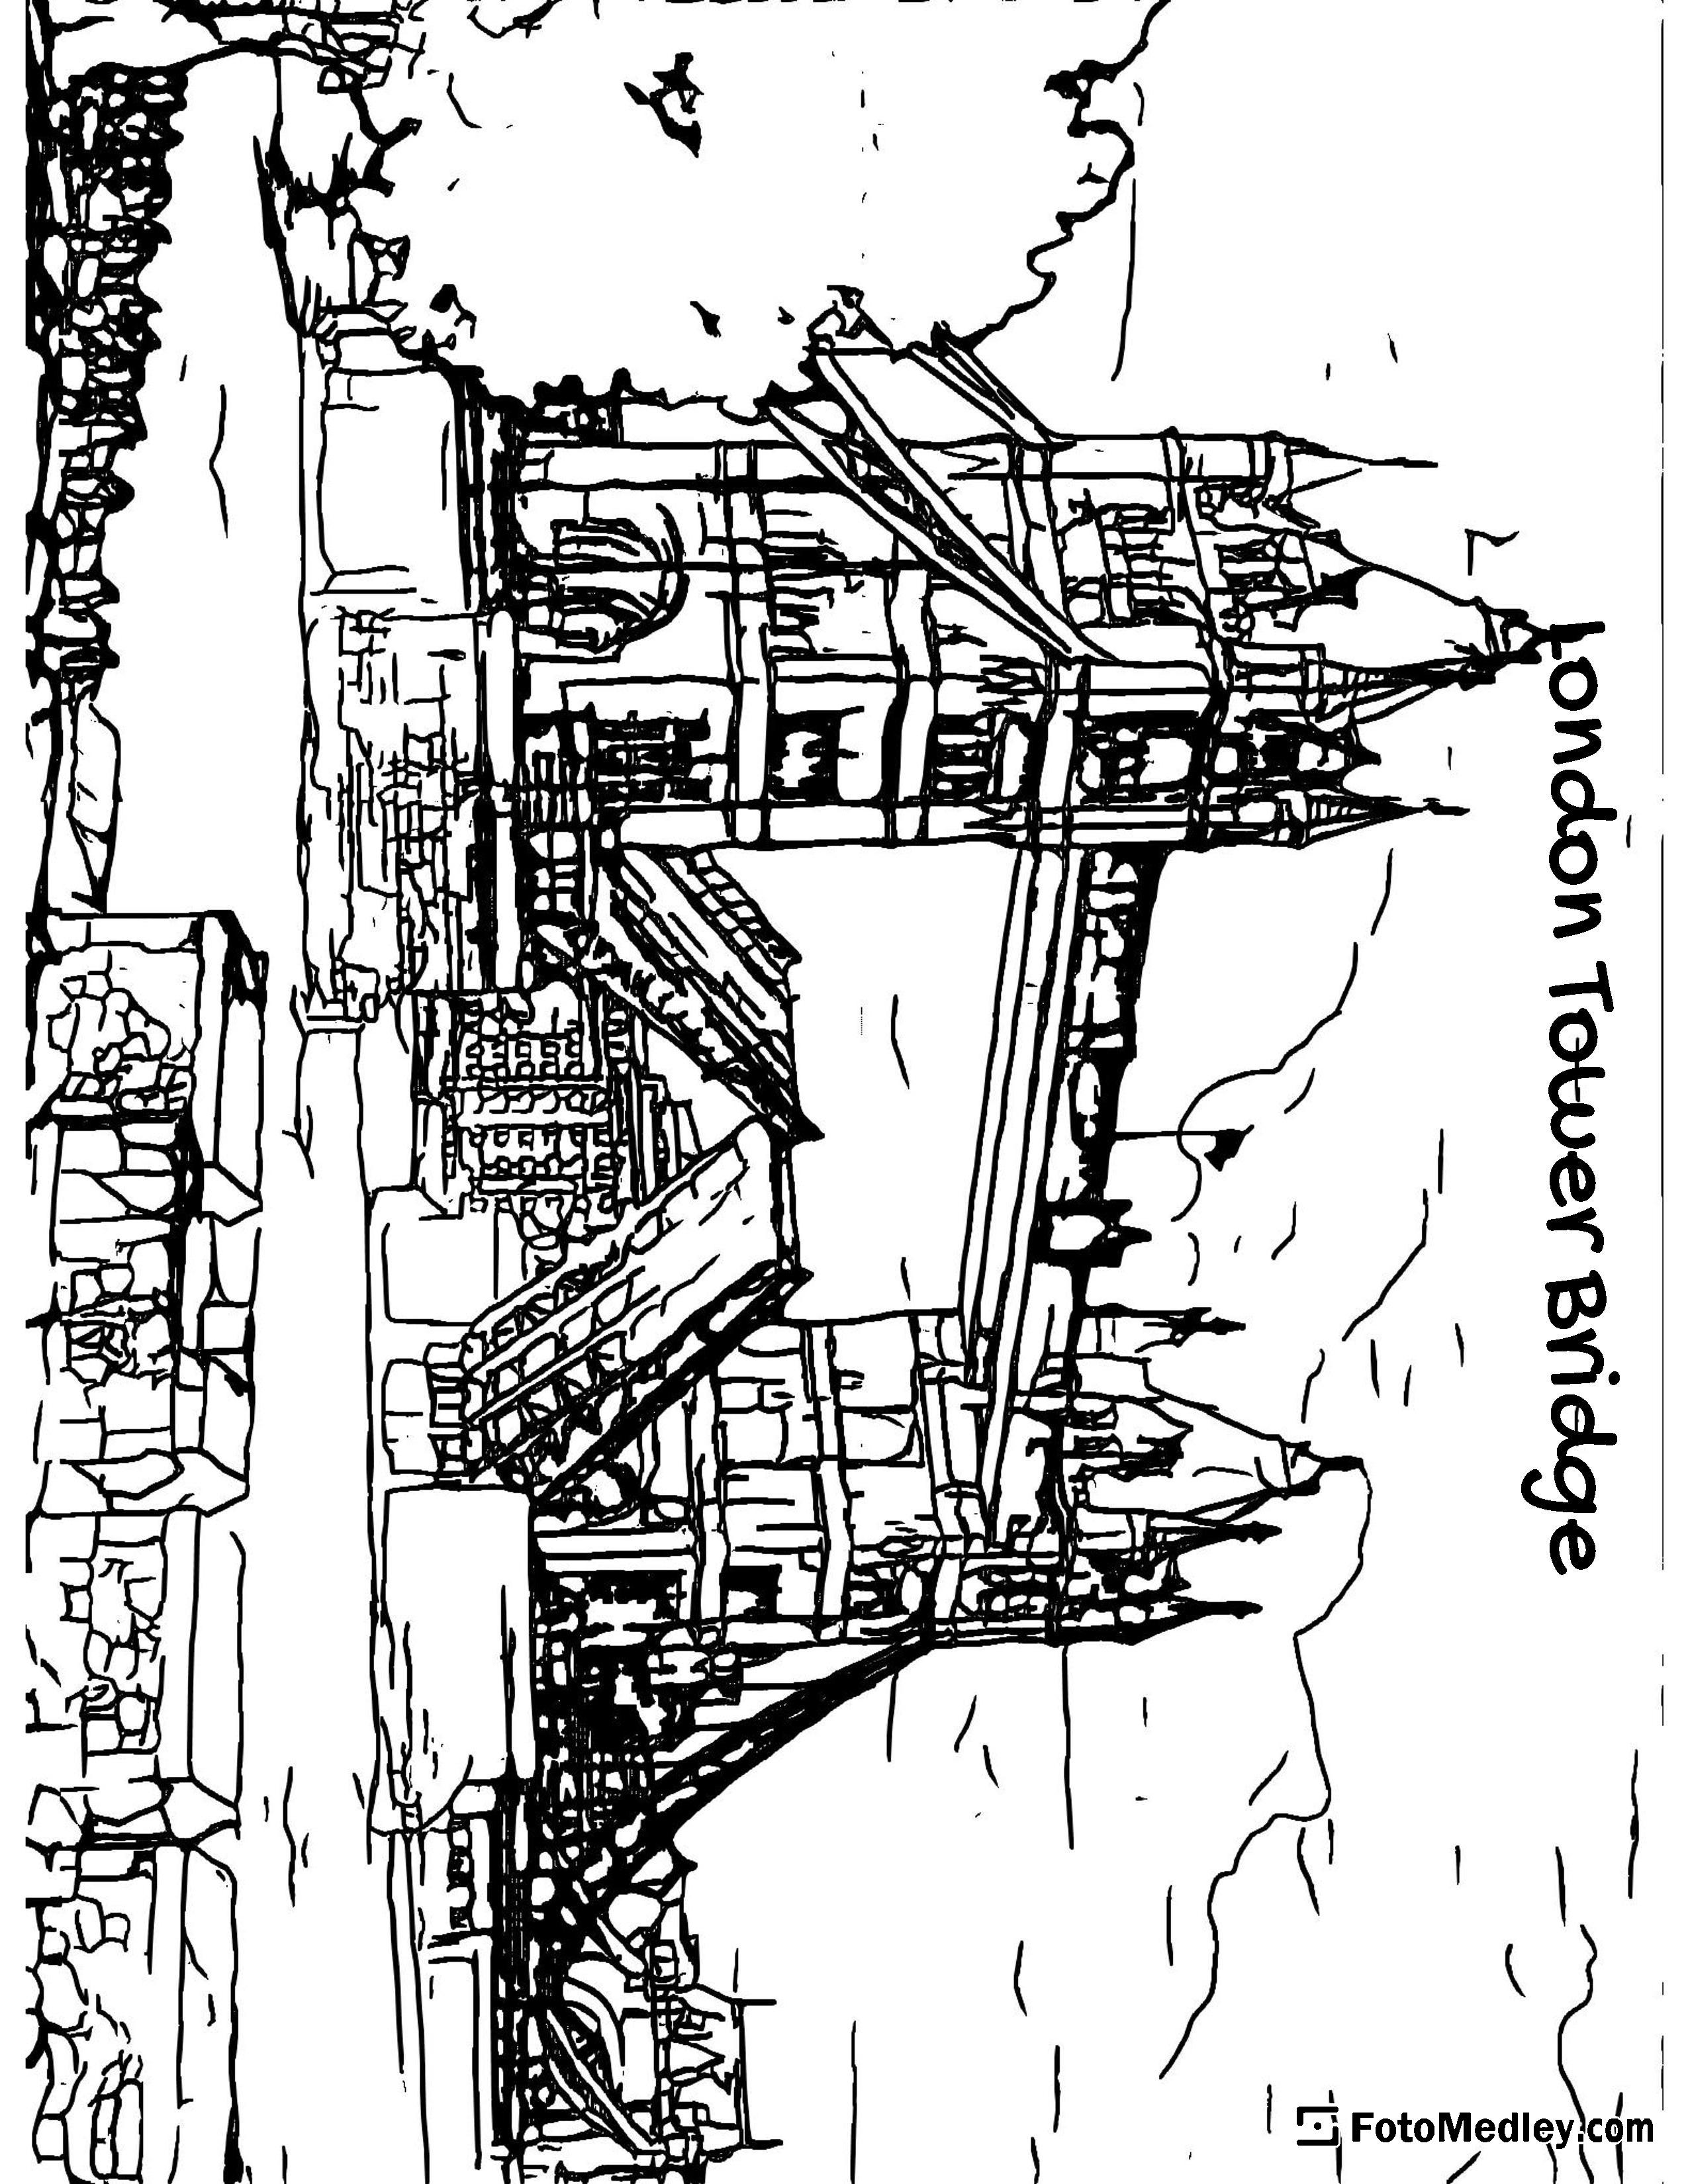 A coloring page of the Tower Bridge in London over the River Thames, with the drawbridge up.